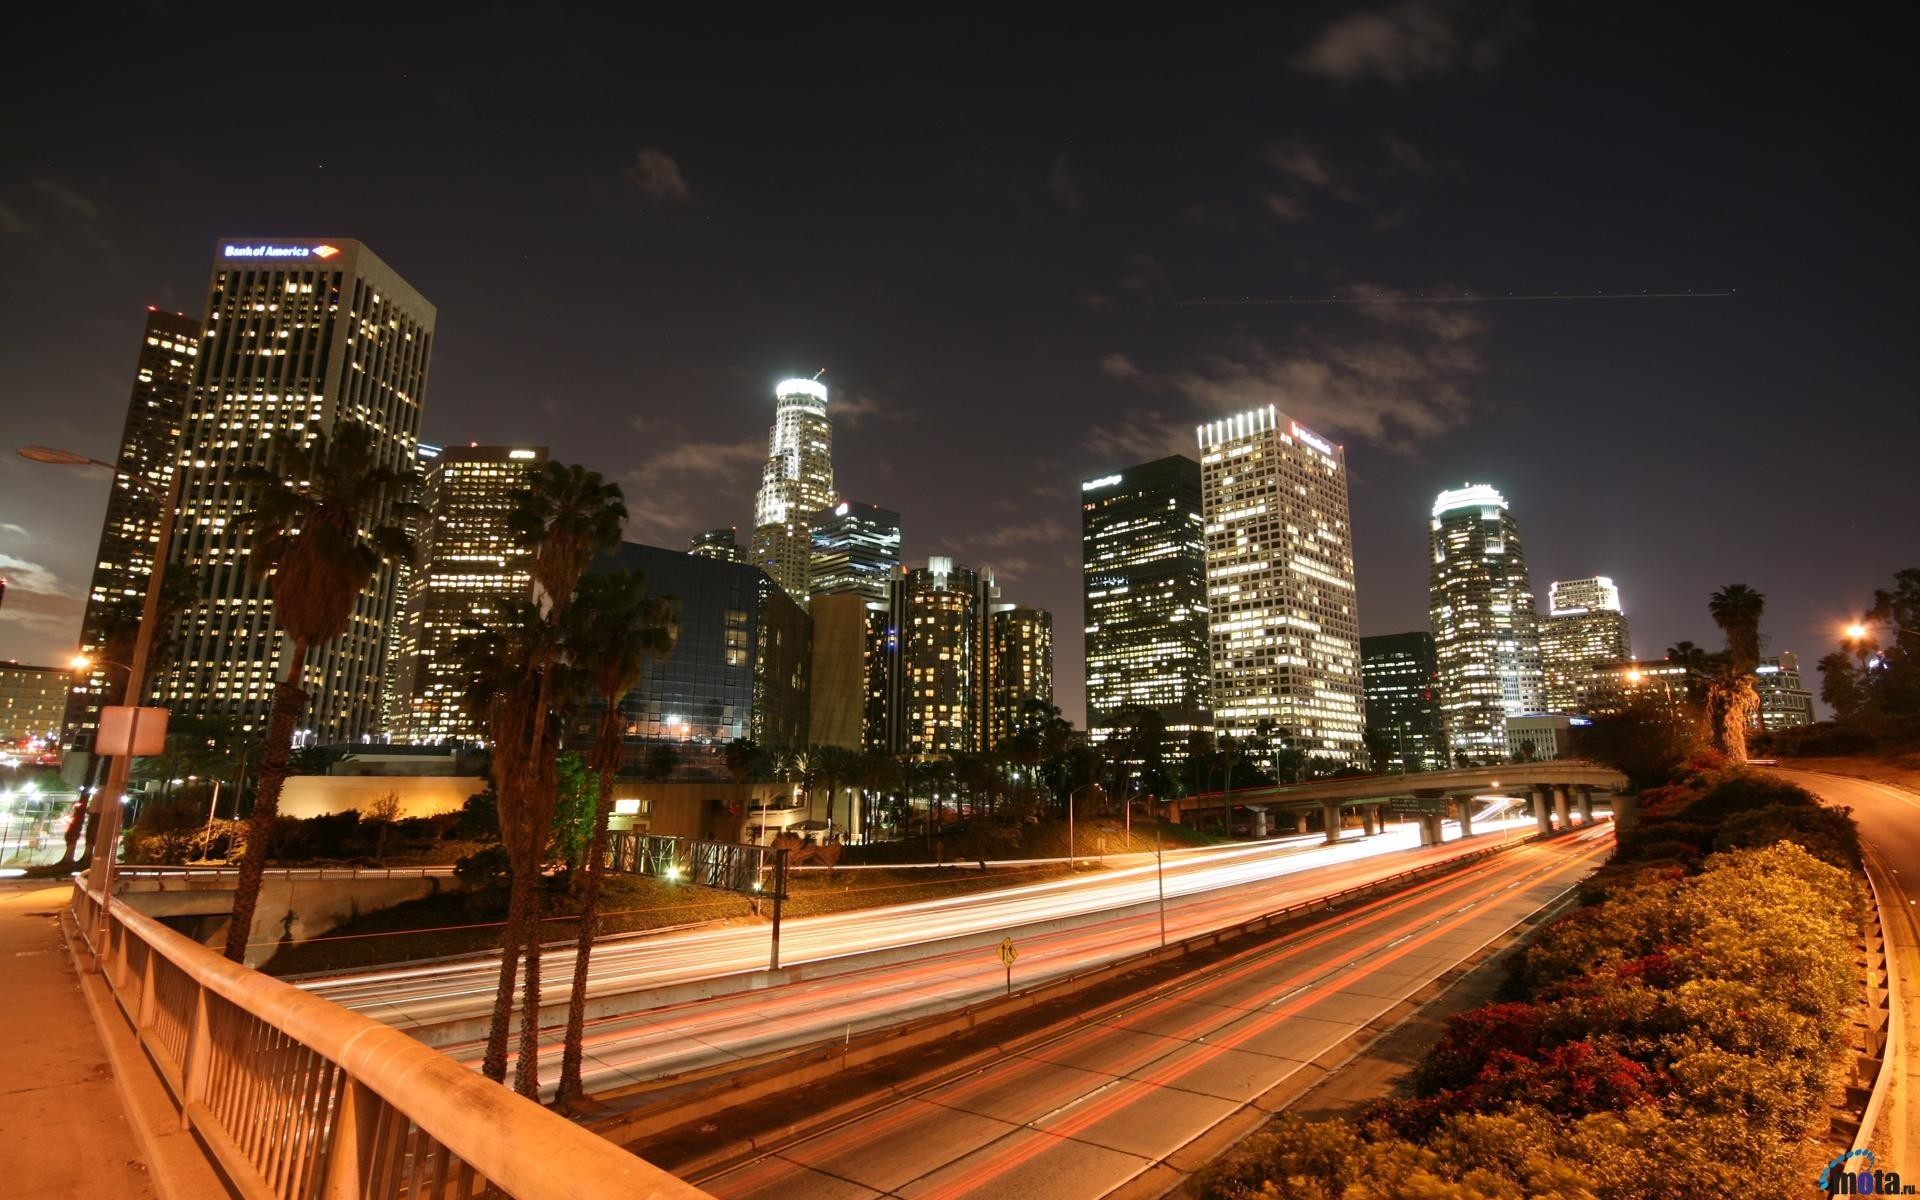 Los Angeles Street Lights Wallpaper Allwallpaperin 7486